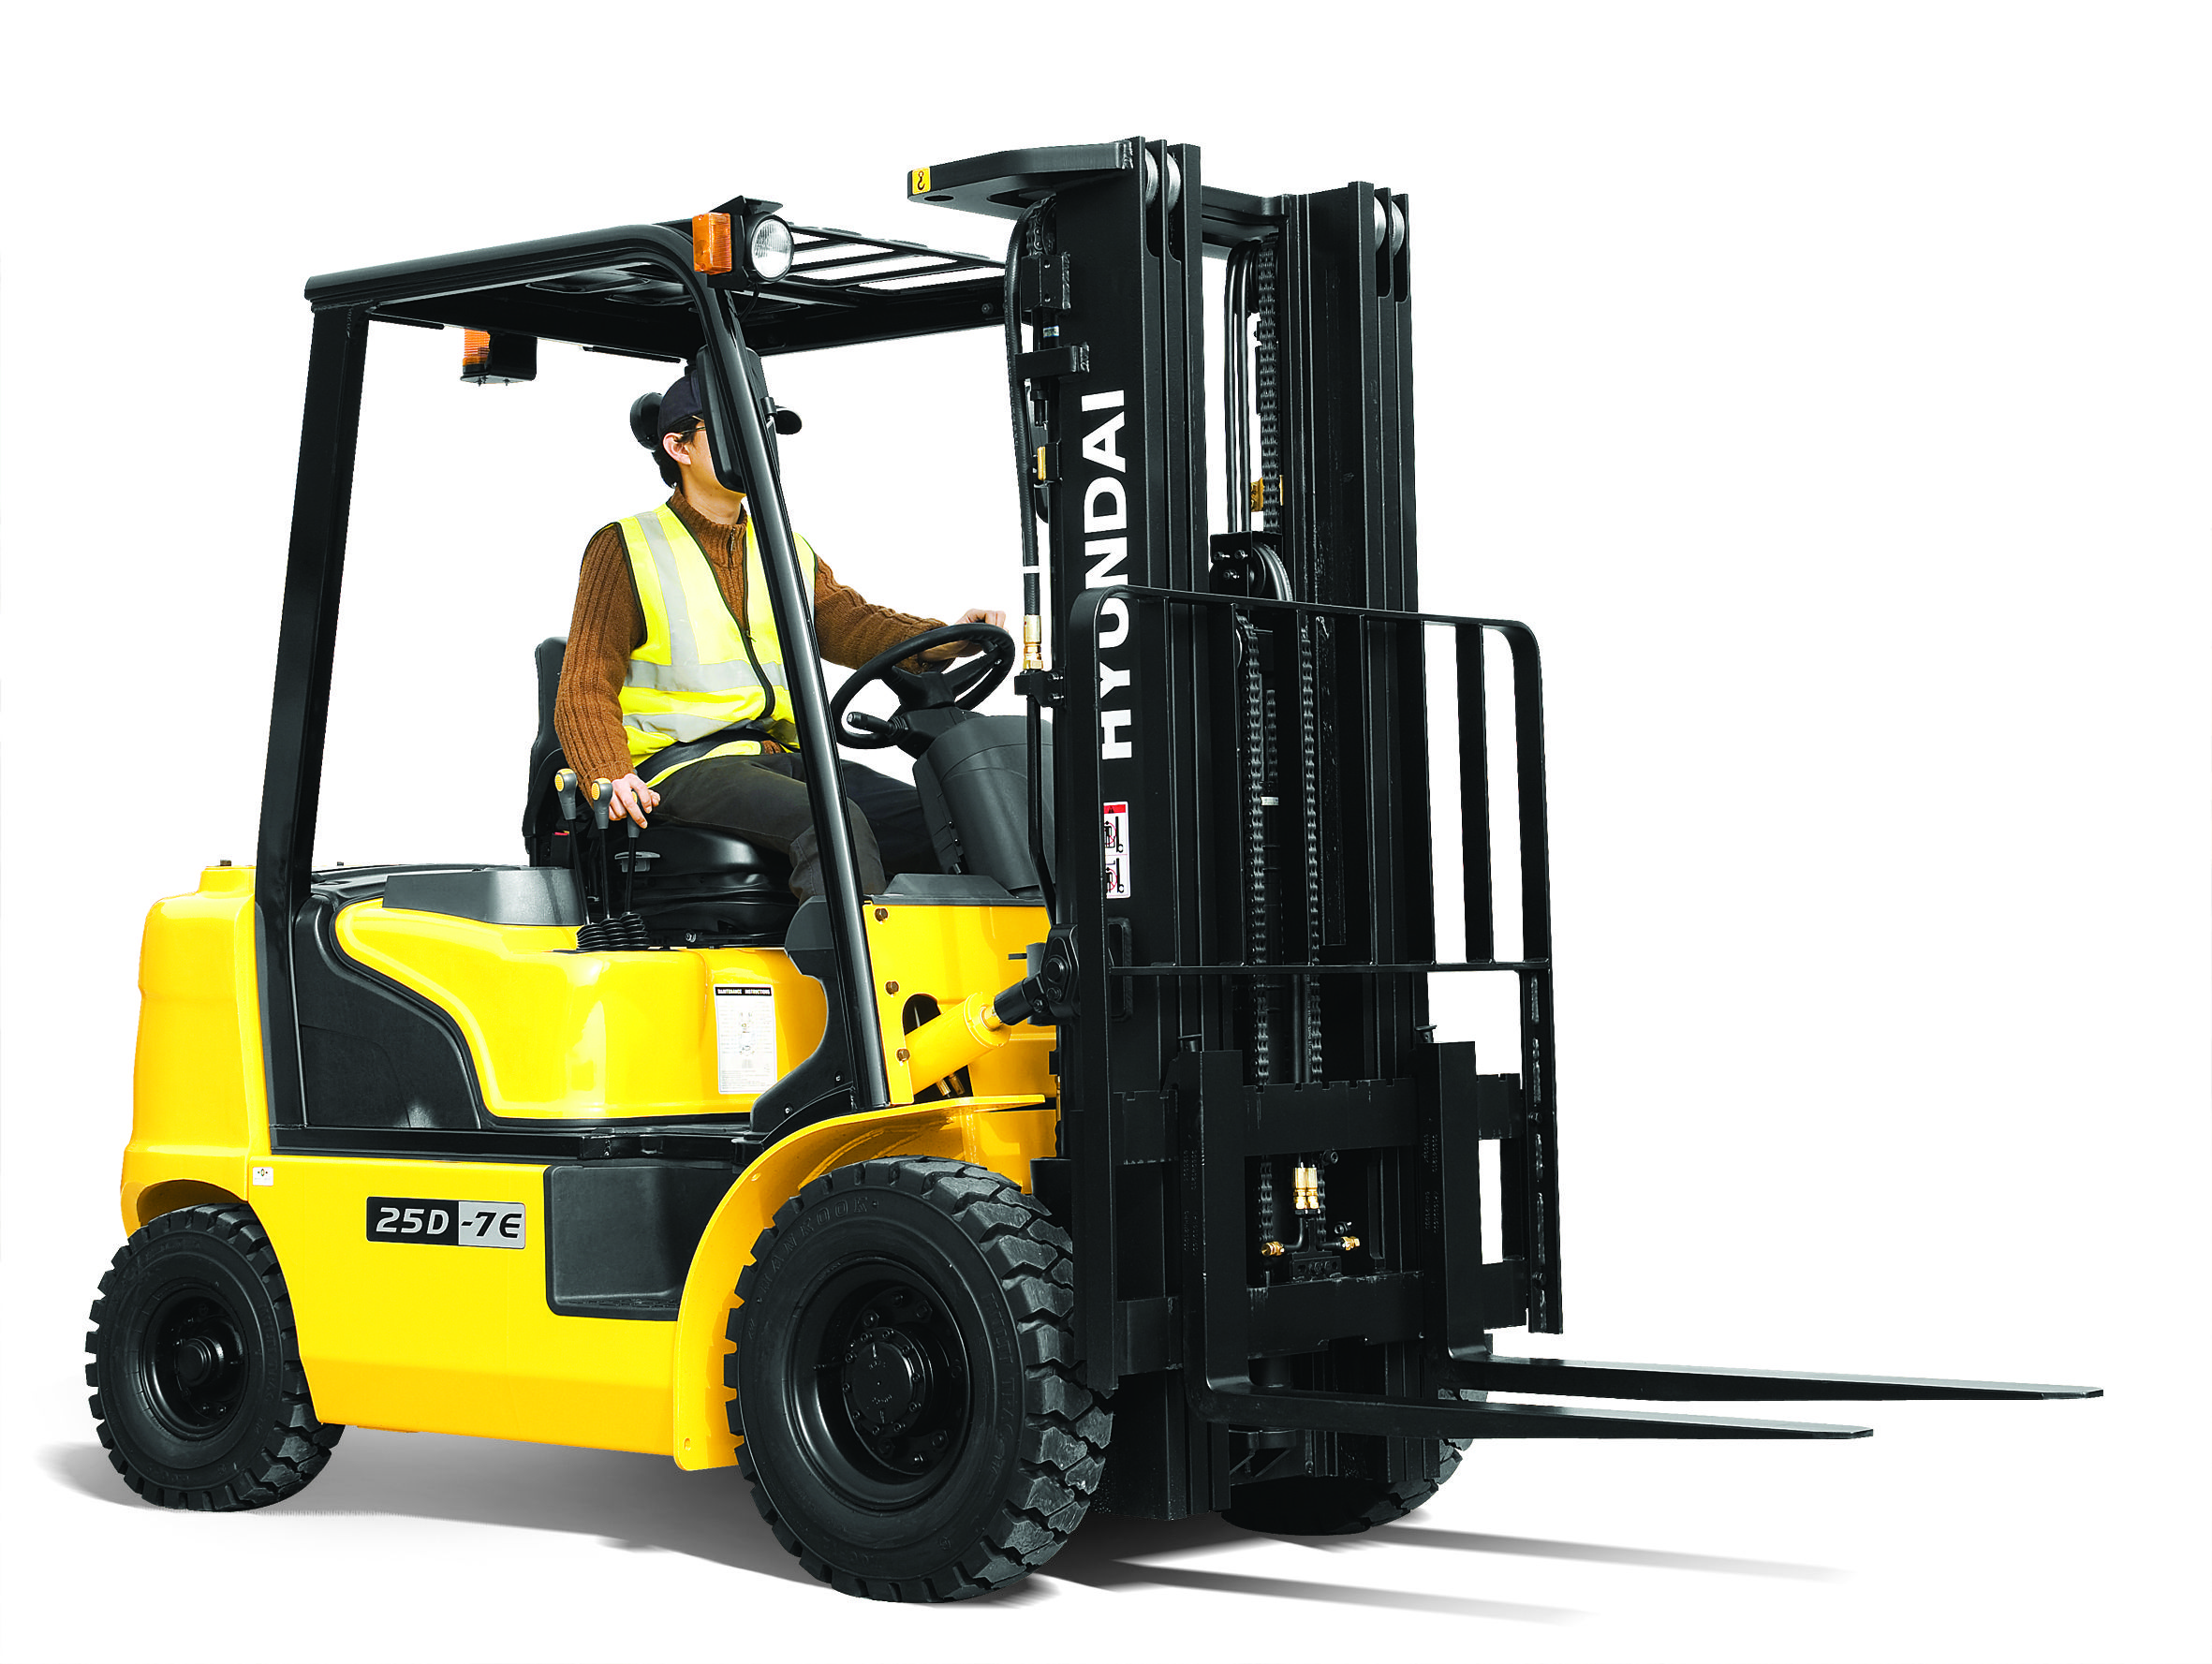 Click on image to download hyundai 20d 7 25d 7 30d 7 33d 7 forklift get the best deal on new and used forklifts for sale here by having forklift dealers and sellers compete for the lowest price fandeluxe Image collections